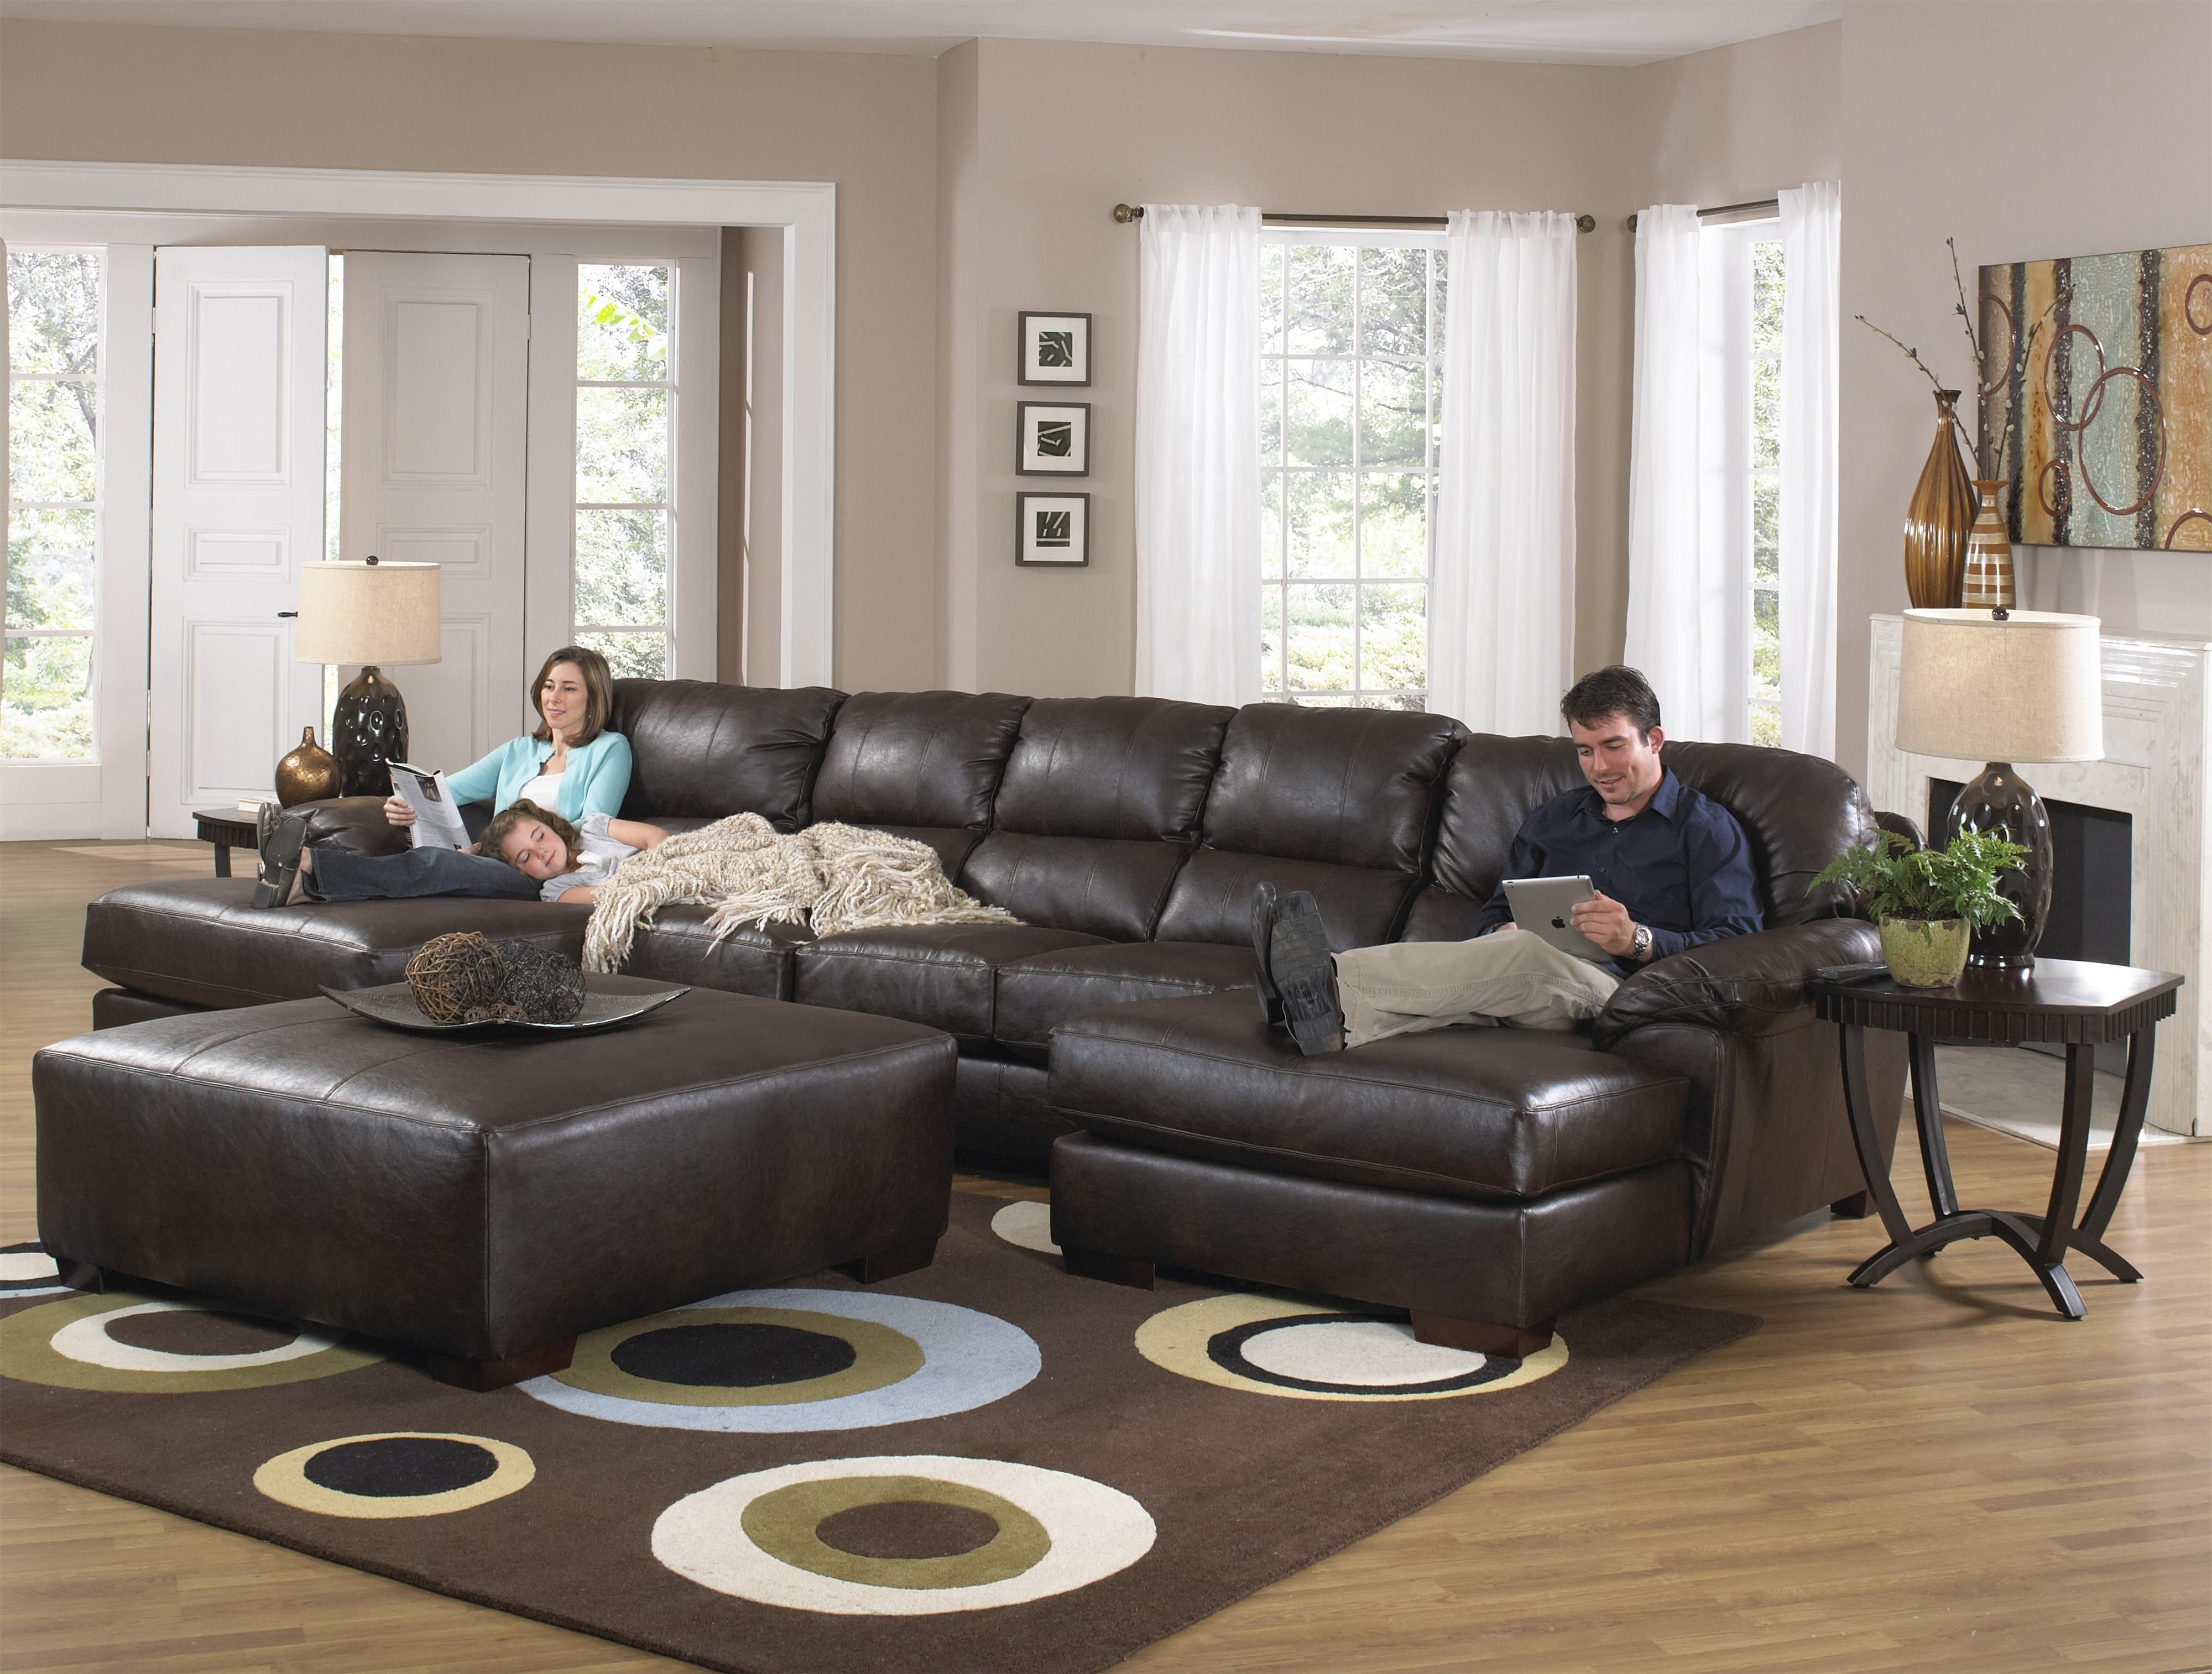 Lawson Two Chaise Sectional Sofa With Five Total Seatsjackson Pertaining To Jackson Tn Sectional Sofas (Image 5 of 10)